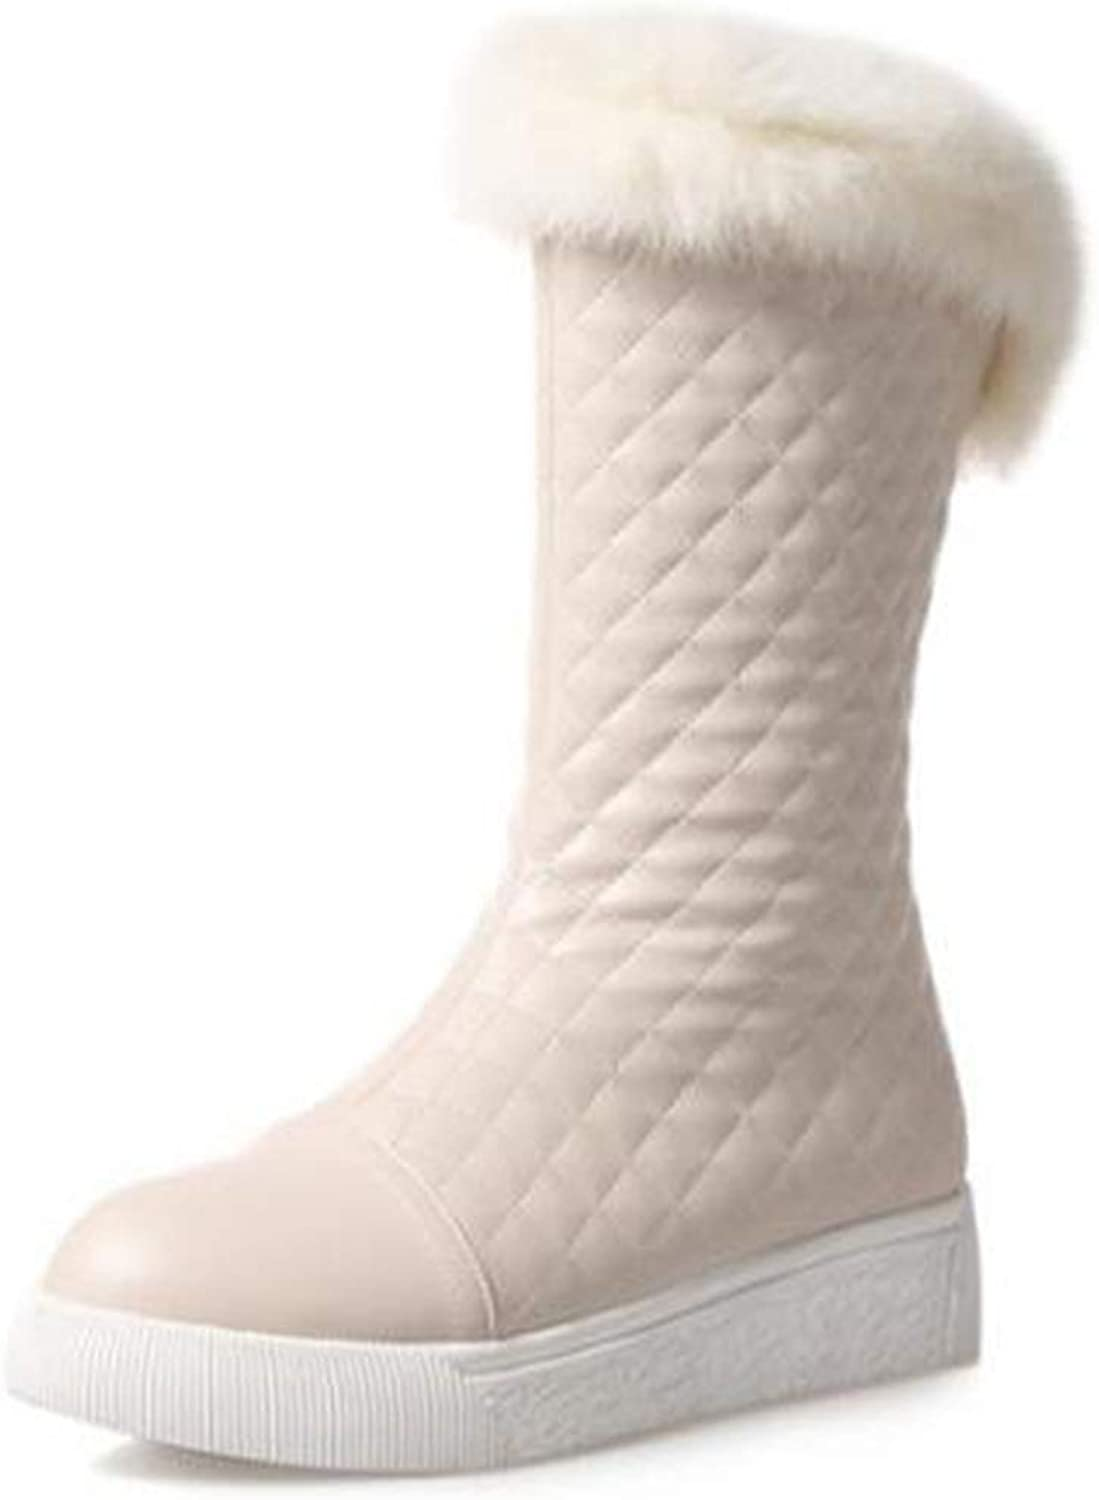 TWGDH Outdoor Tall Boots Winter Waterproof Warm Fur Lined shoes Mid-Calf Chunky Heel Quilted Breathable Slip On Snow Boots for Women